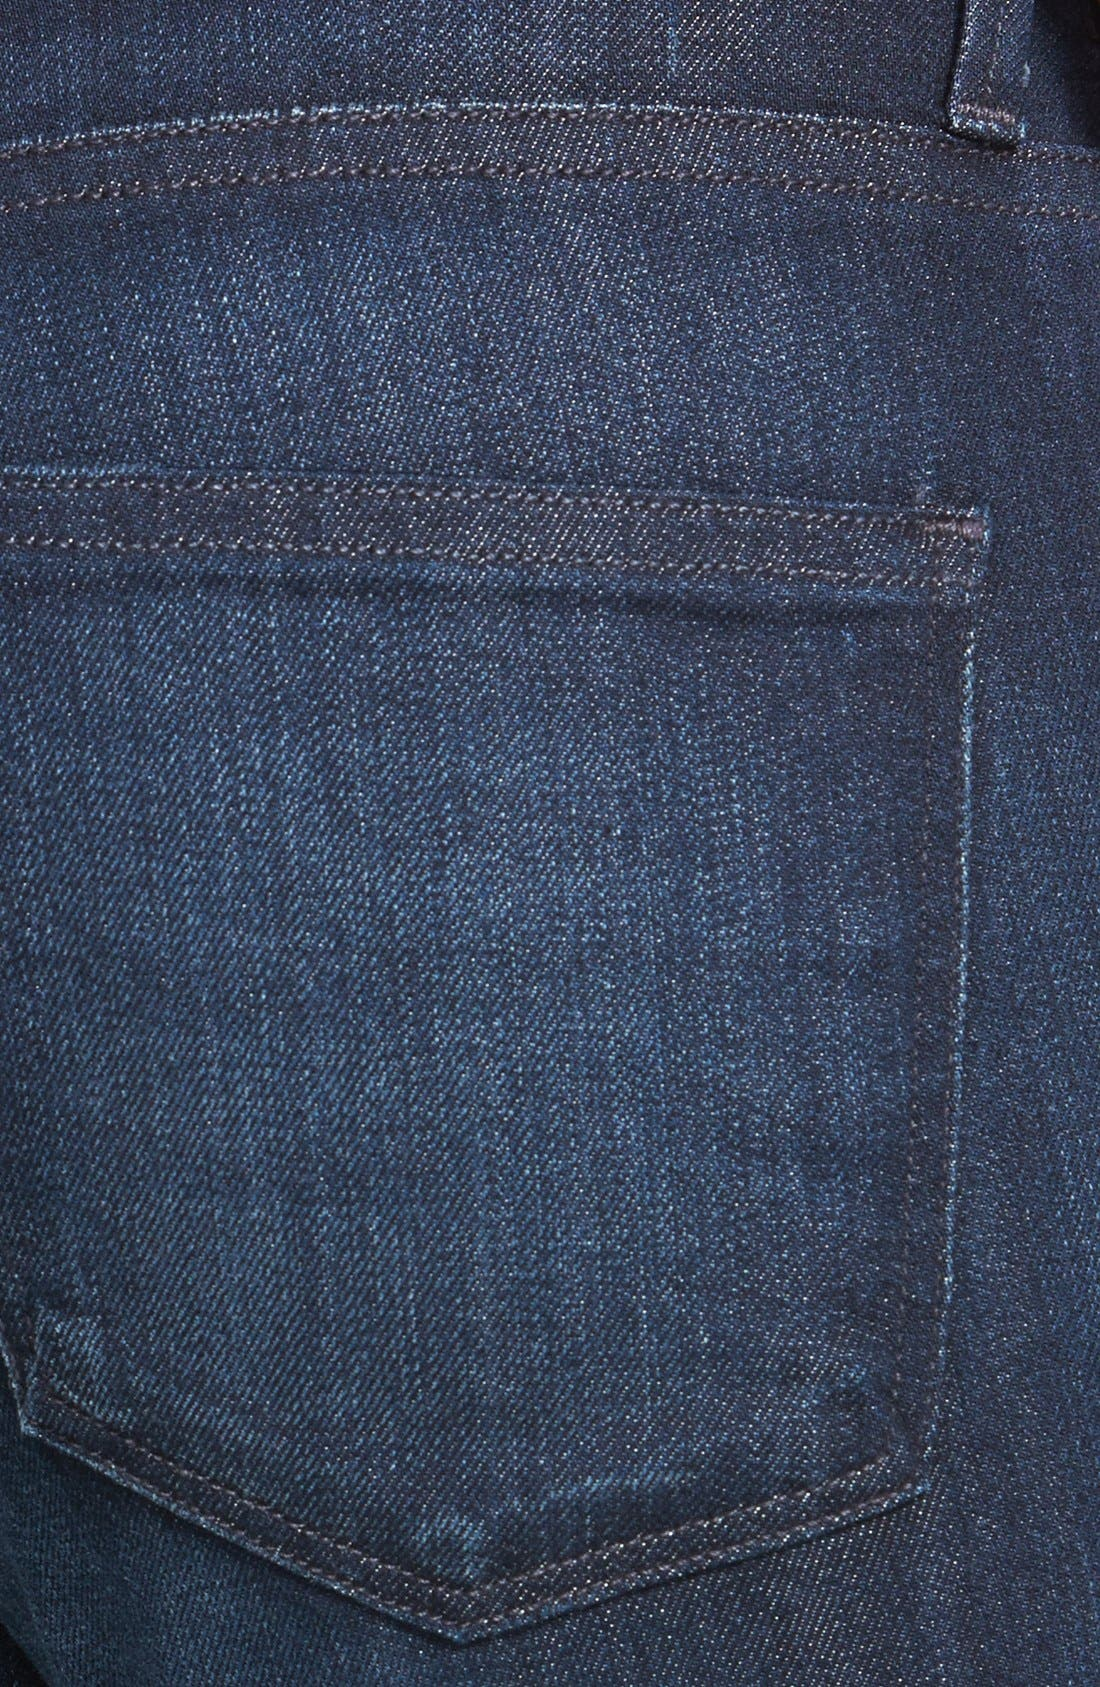 Alternate Image 3  - Citizens of Humanity 'Rocket' Crop Skinny Jeans (Space)